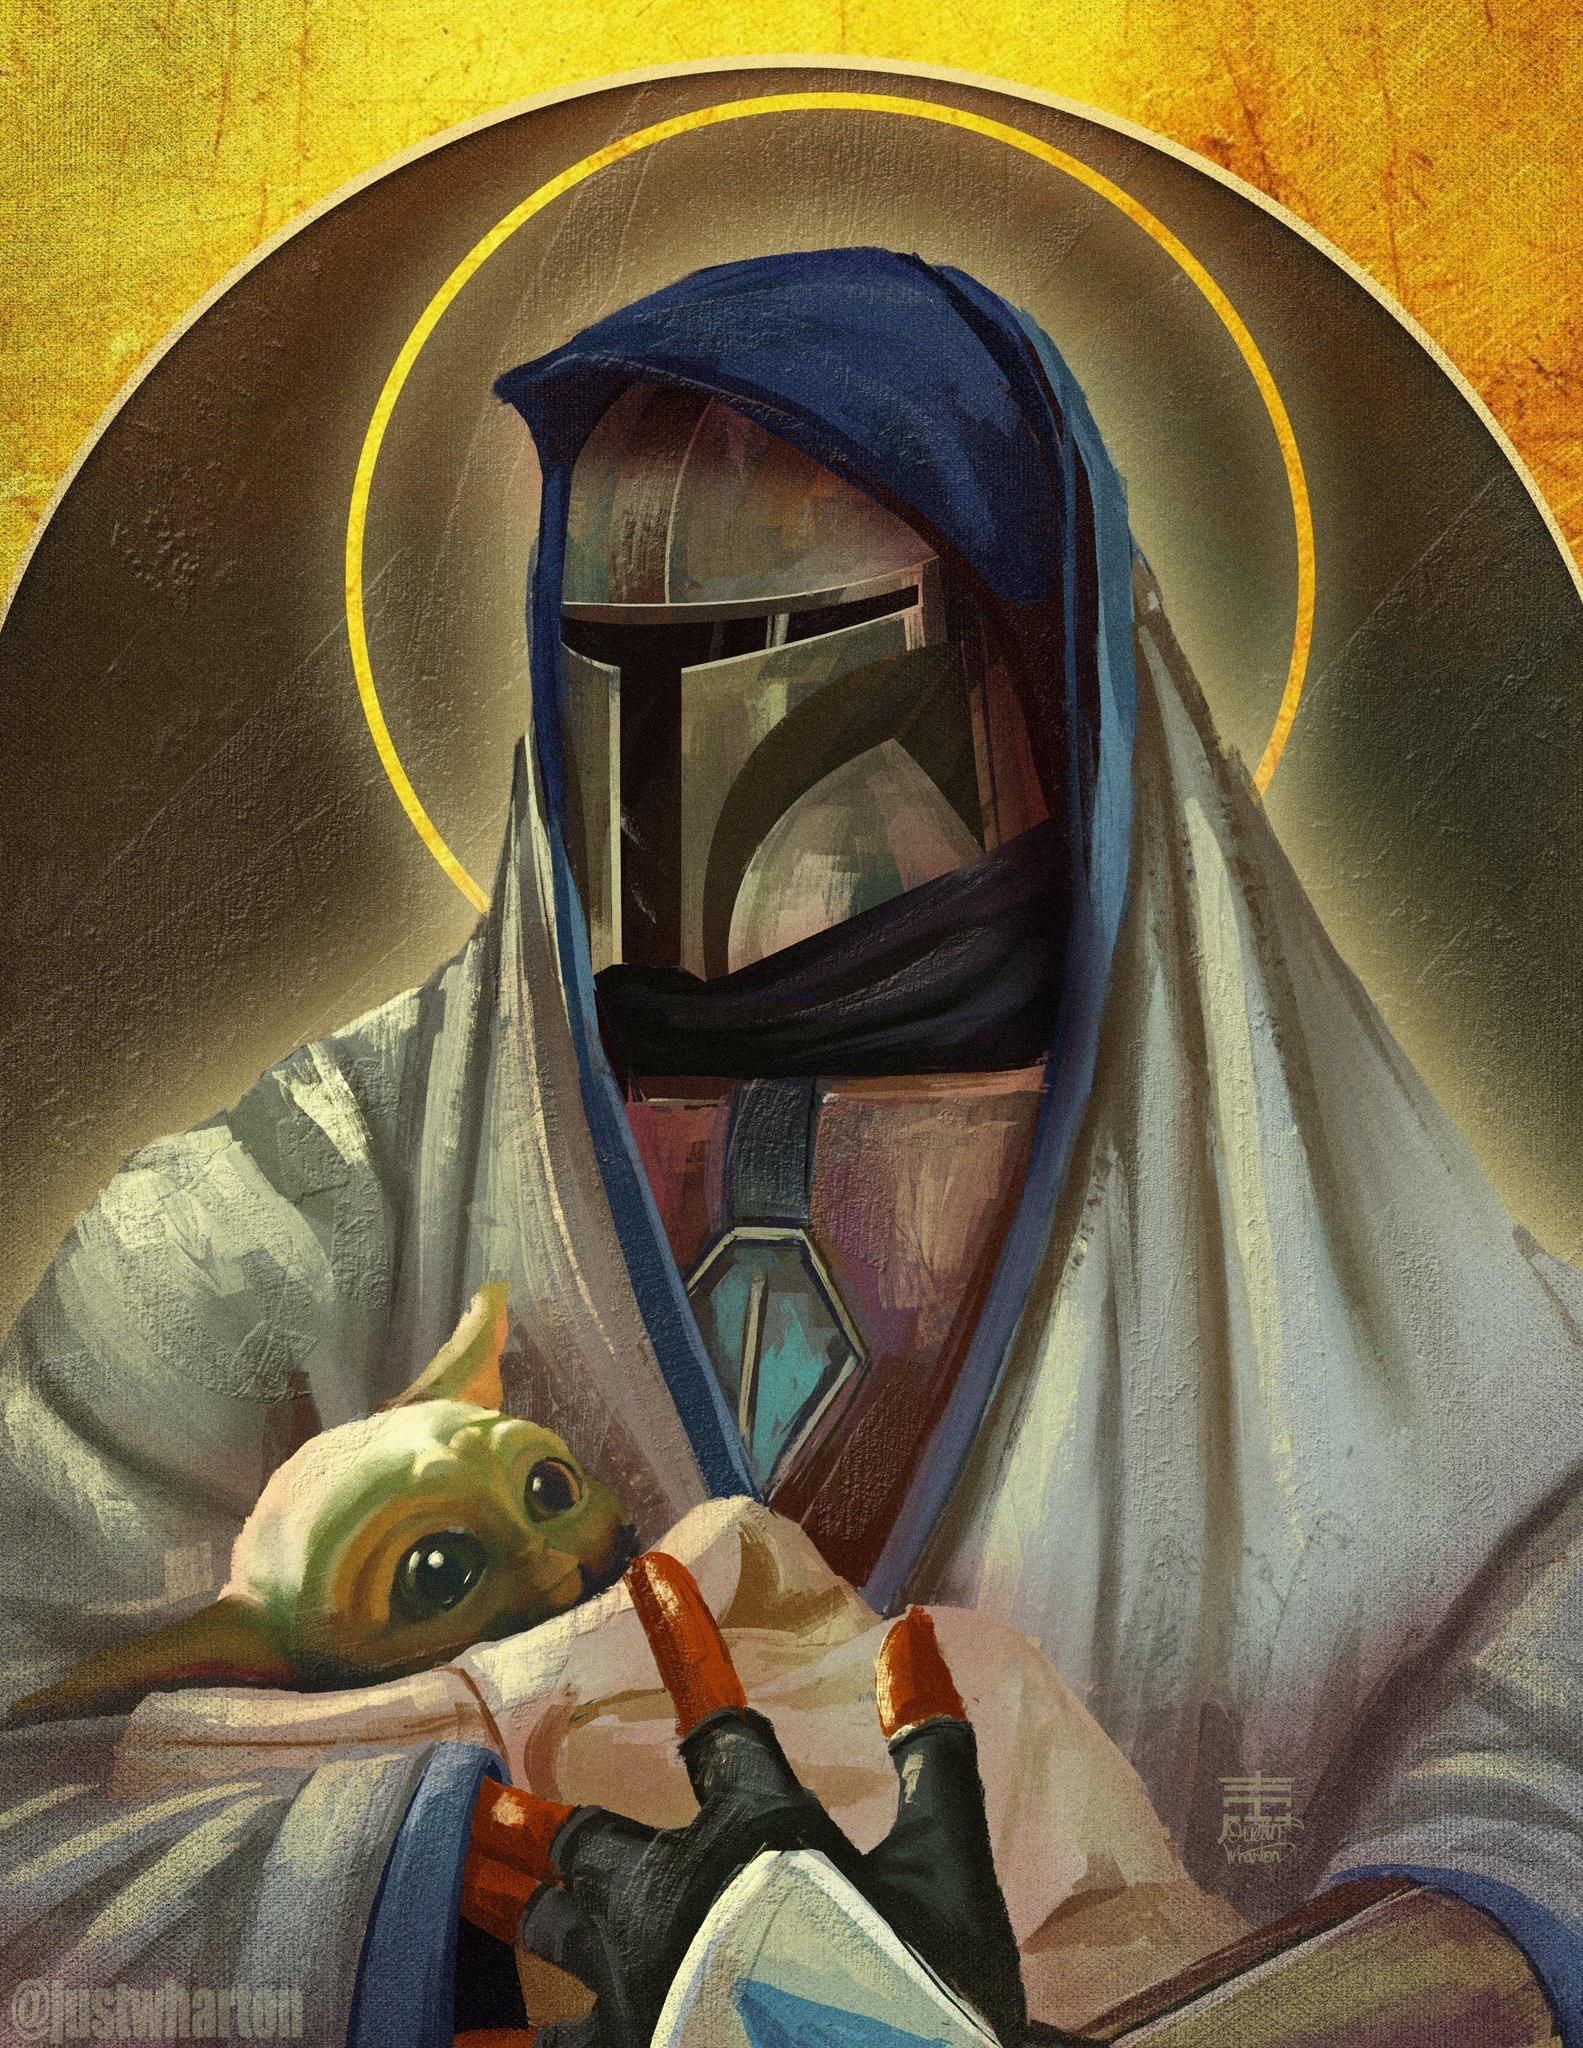 In the theme of star wars everything this has been one of